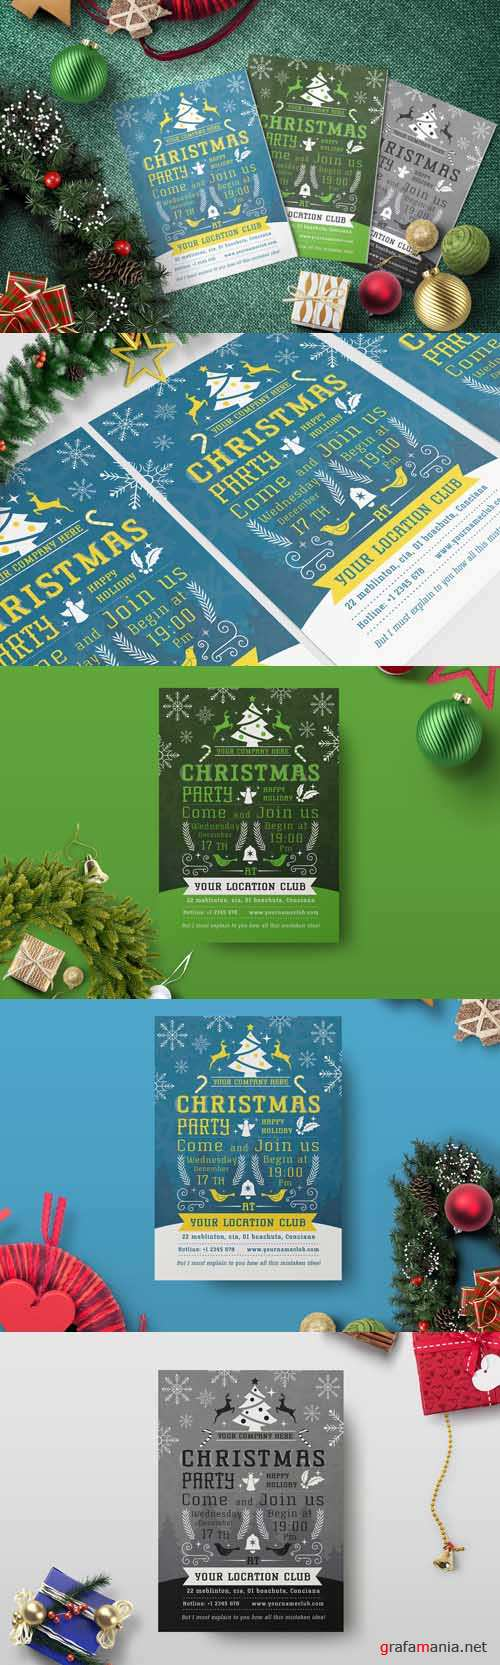 Flyer Template - Christmas Party 2